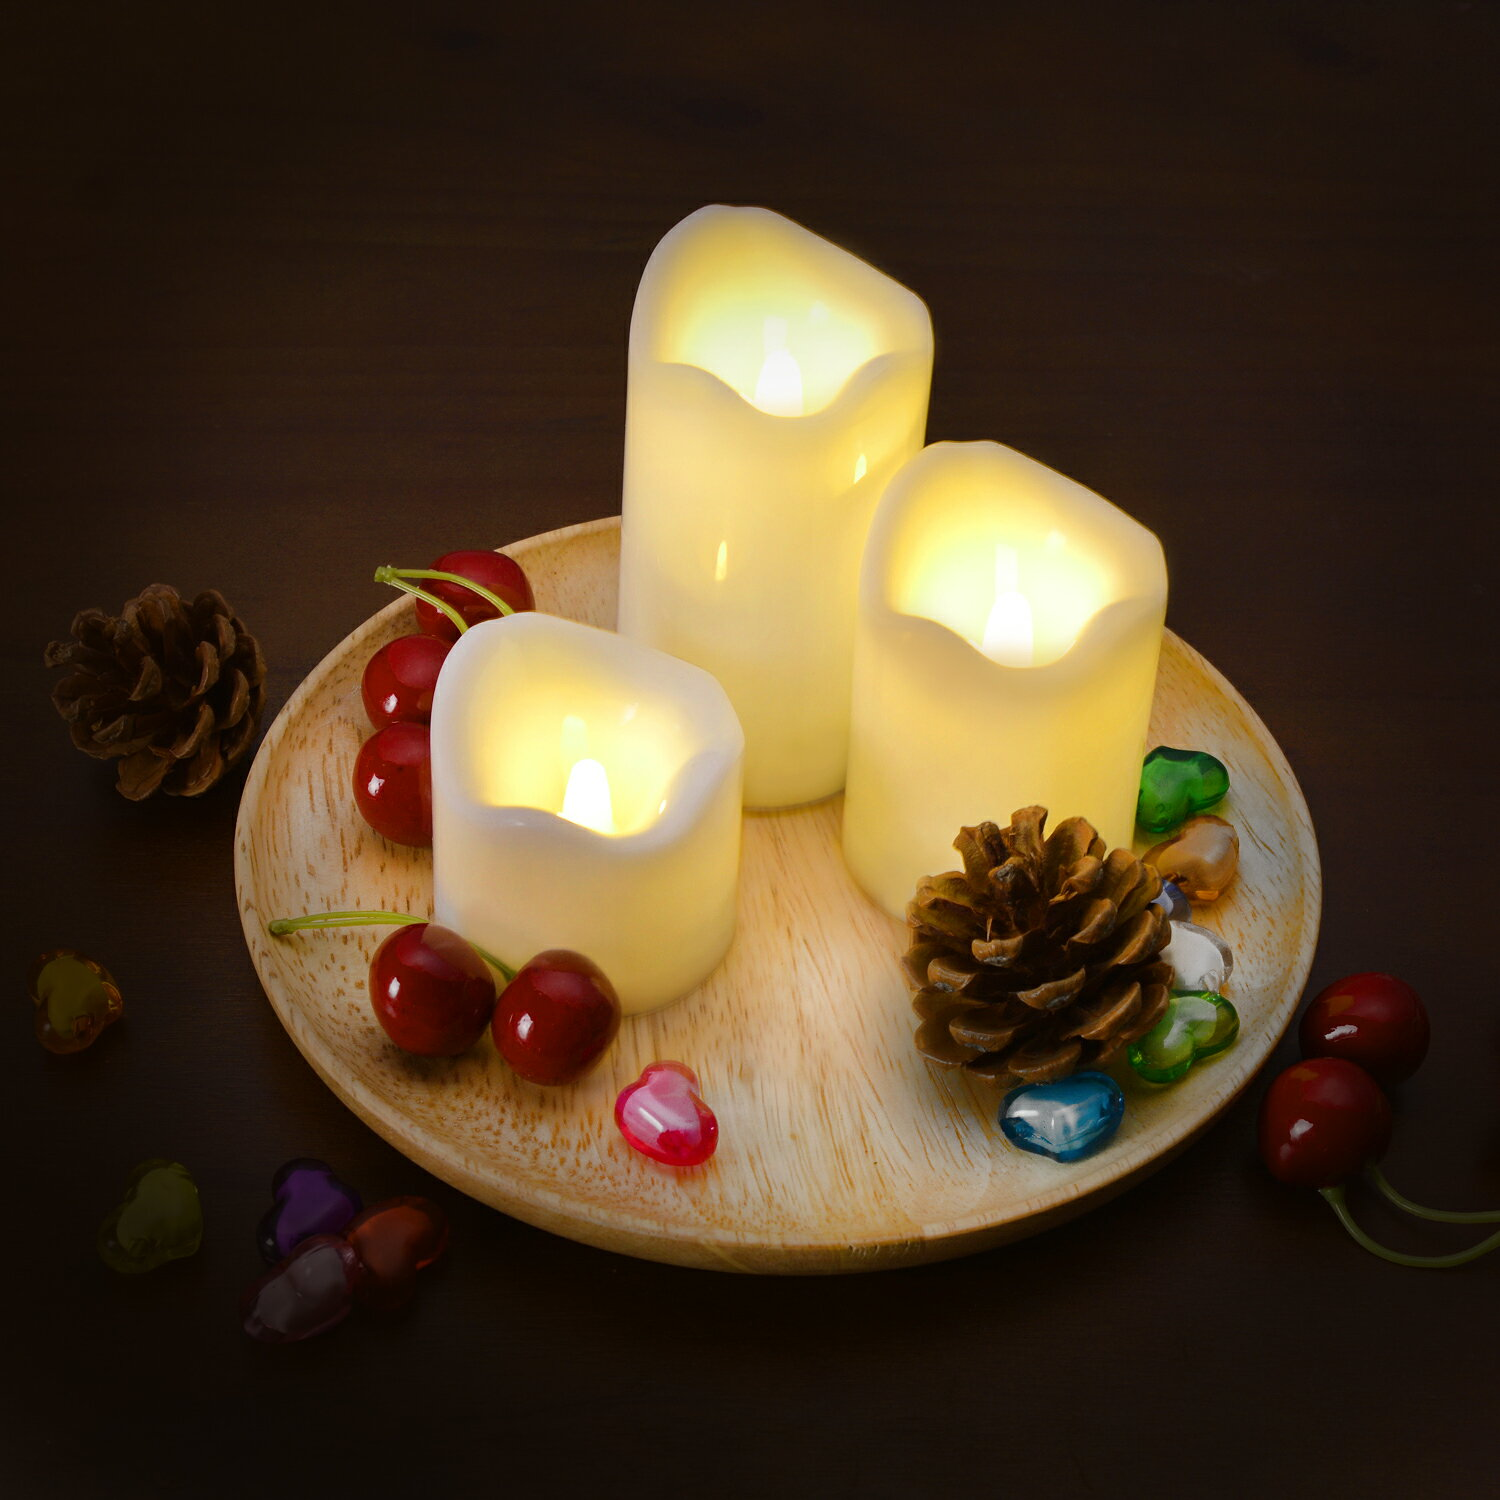 LED Candles Battery Operated Flameless Flickering smokeless 3 PCS/set Premium Votive Candles for Wedding/Party Decorations warm white 8